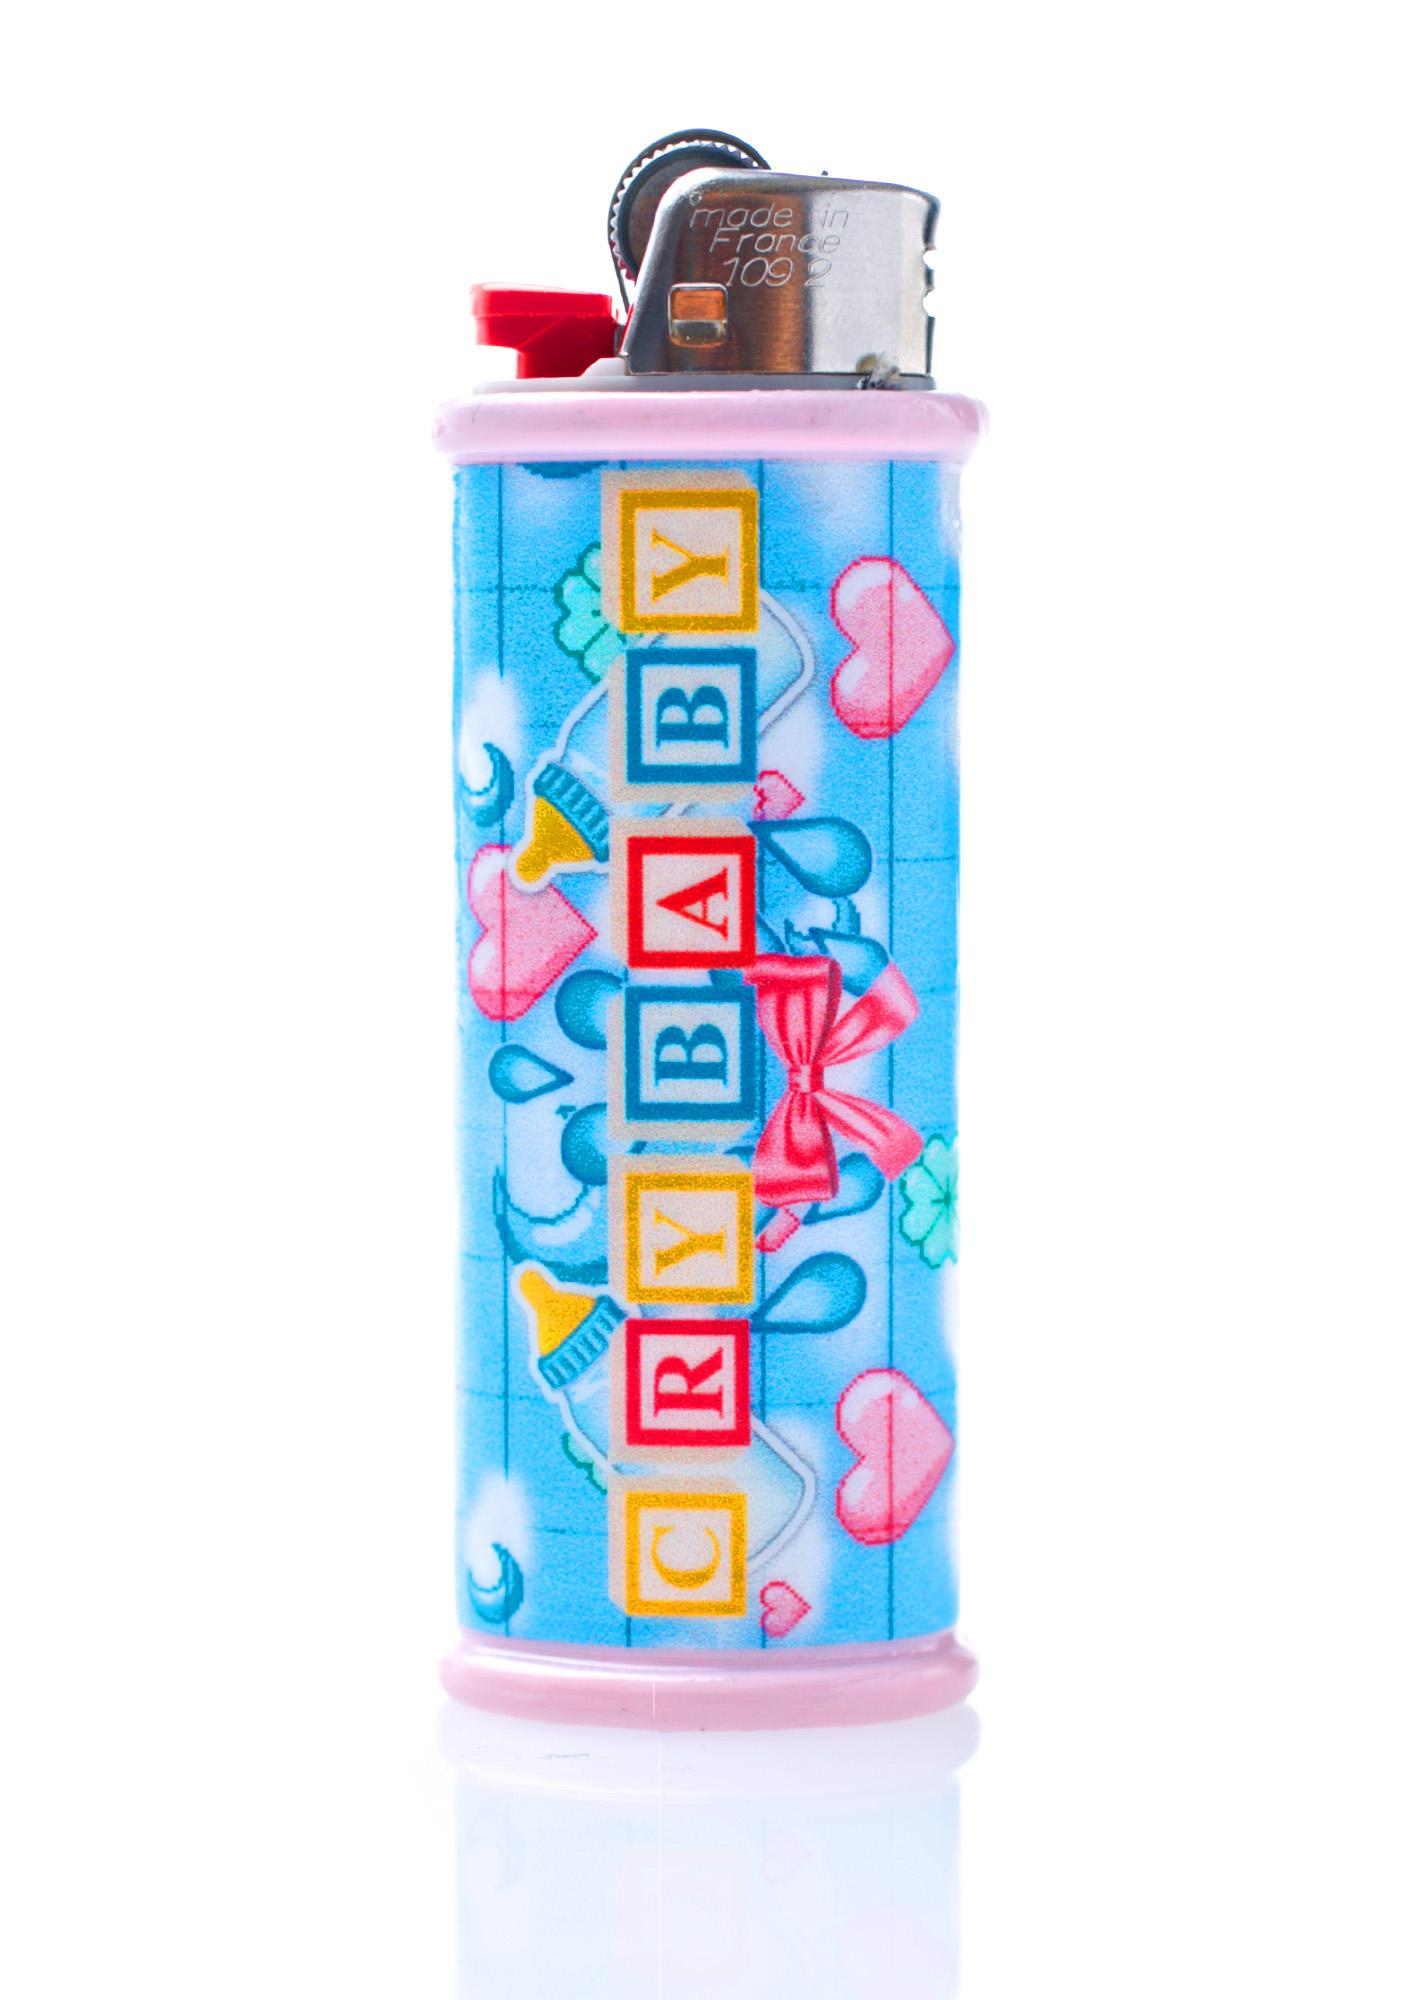 My Bubblegum Fantasy Crybaby Lighter Case